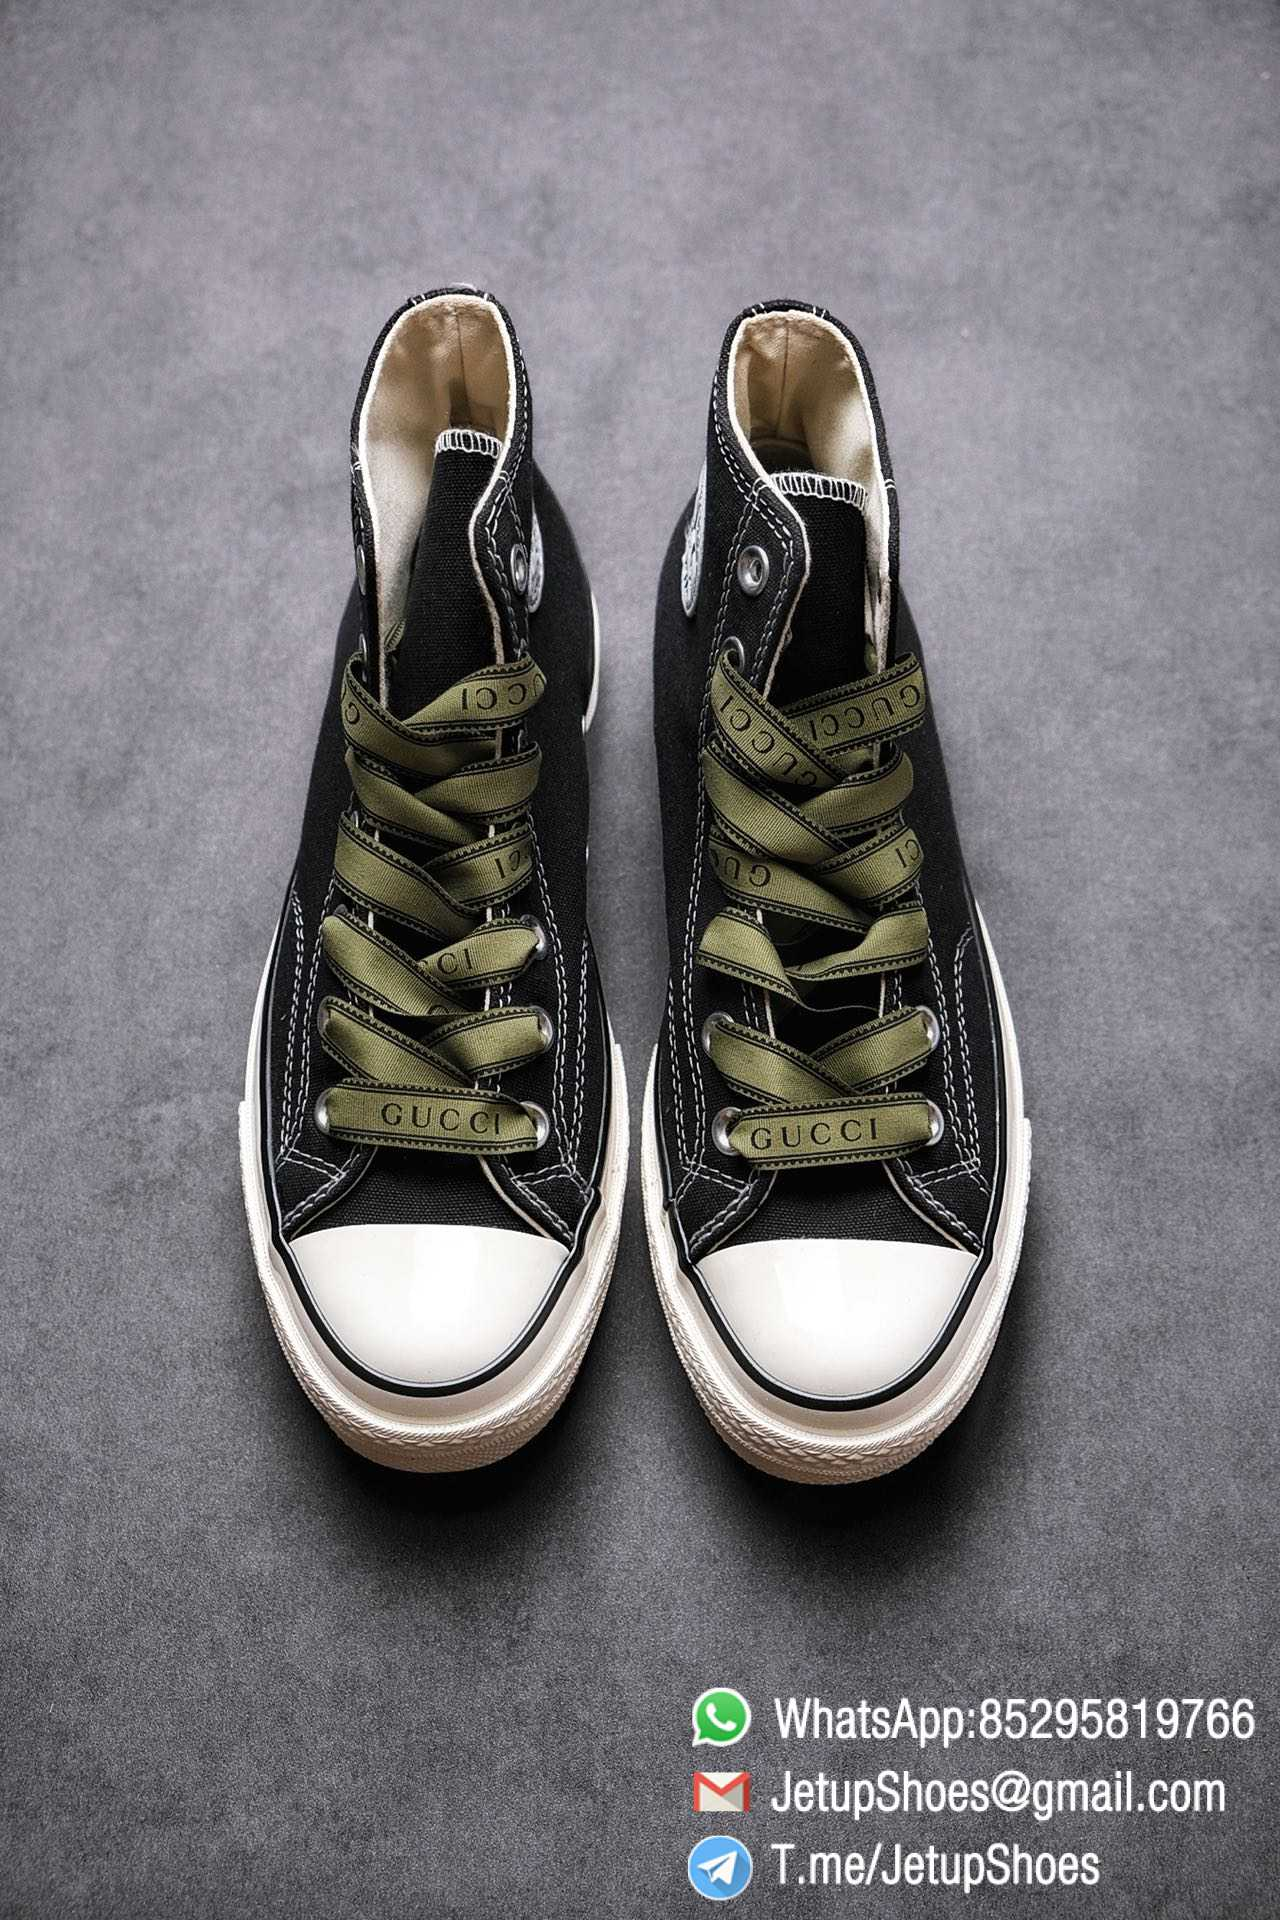 Womens Converse x Gucci Tennis 1970S High Top Sneaker Vintage Inspired Green Shoelace Black 2021 Spring 02